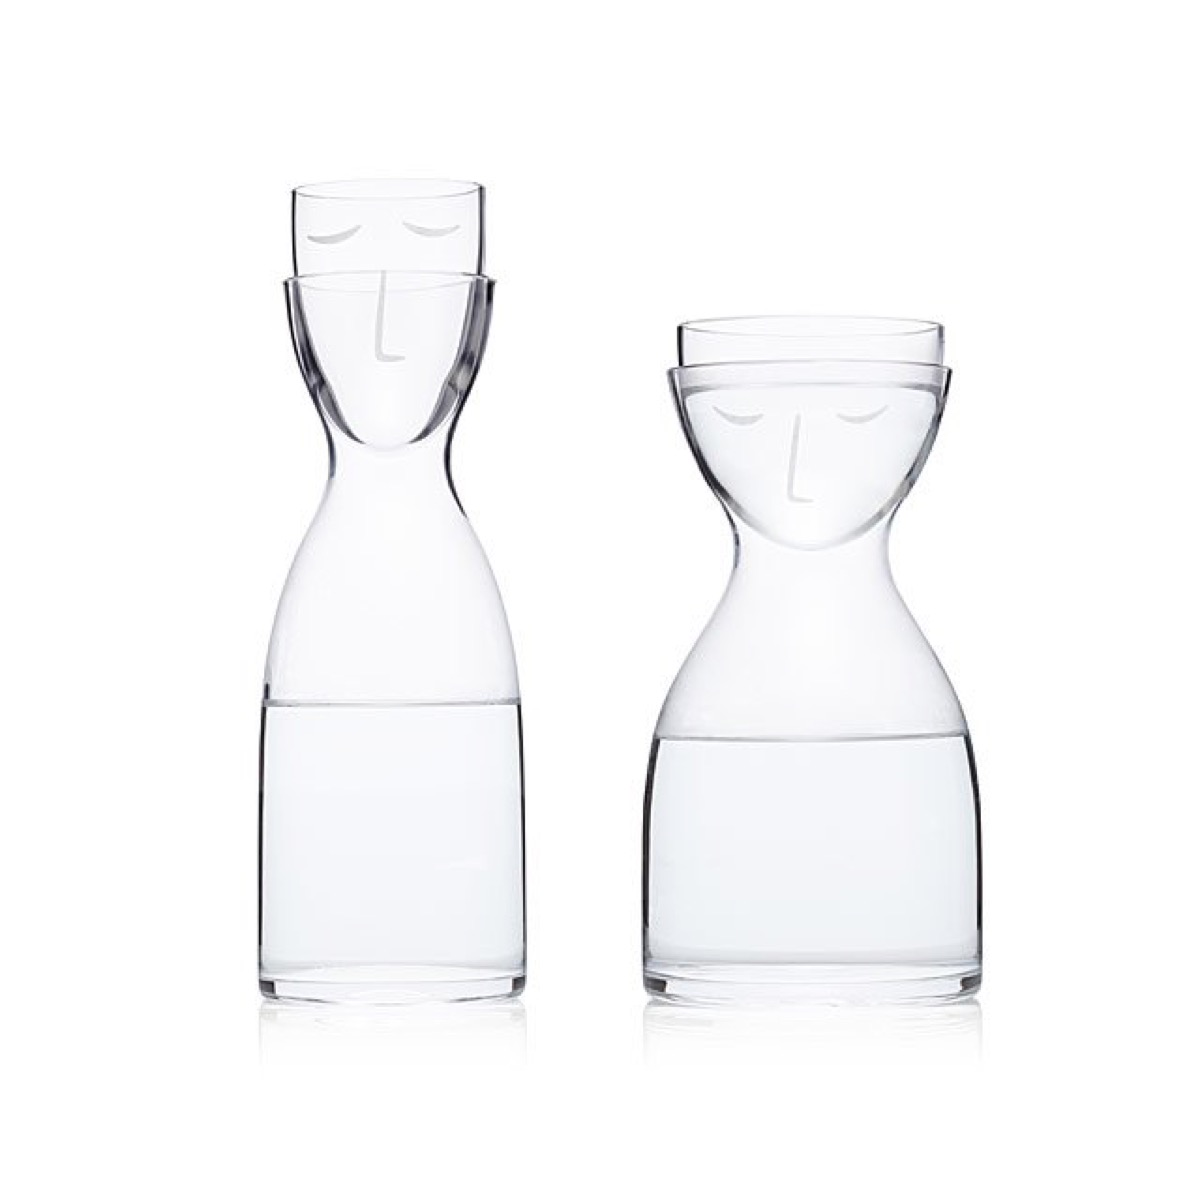 sleepy head bedside carafe set with faces on them